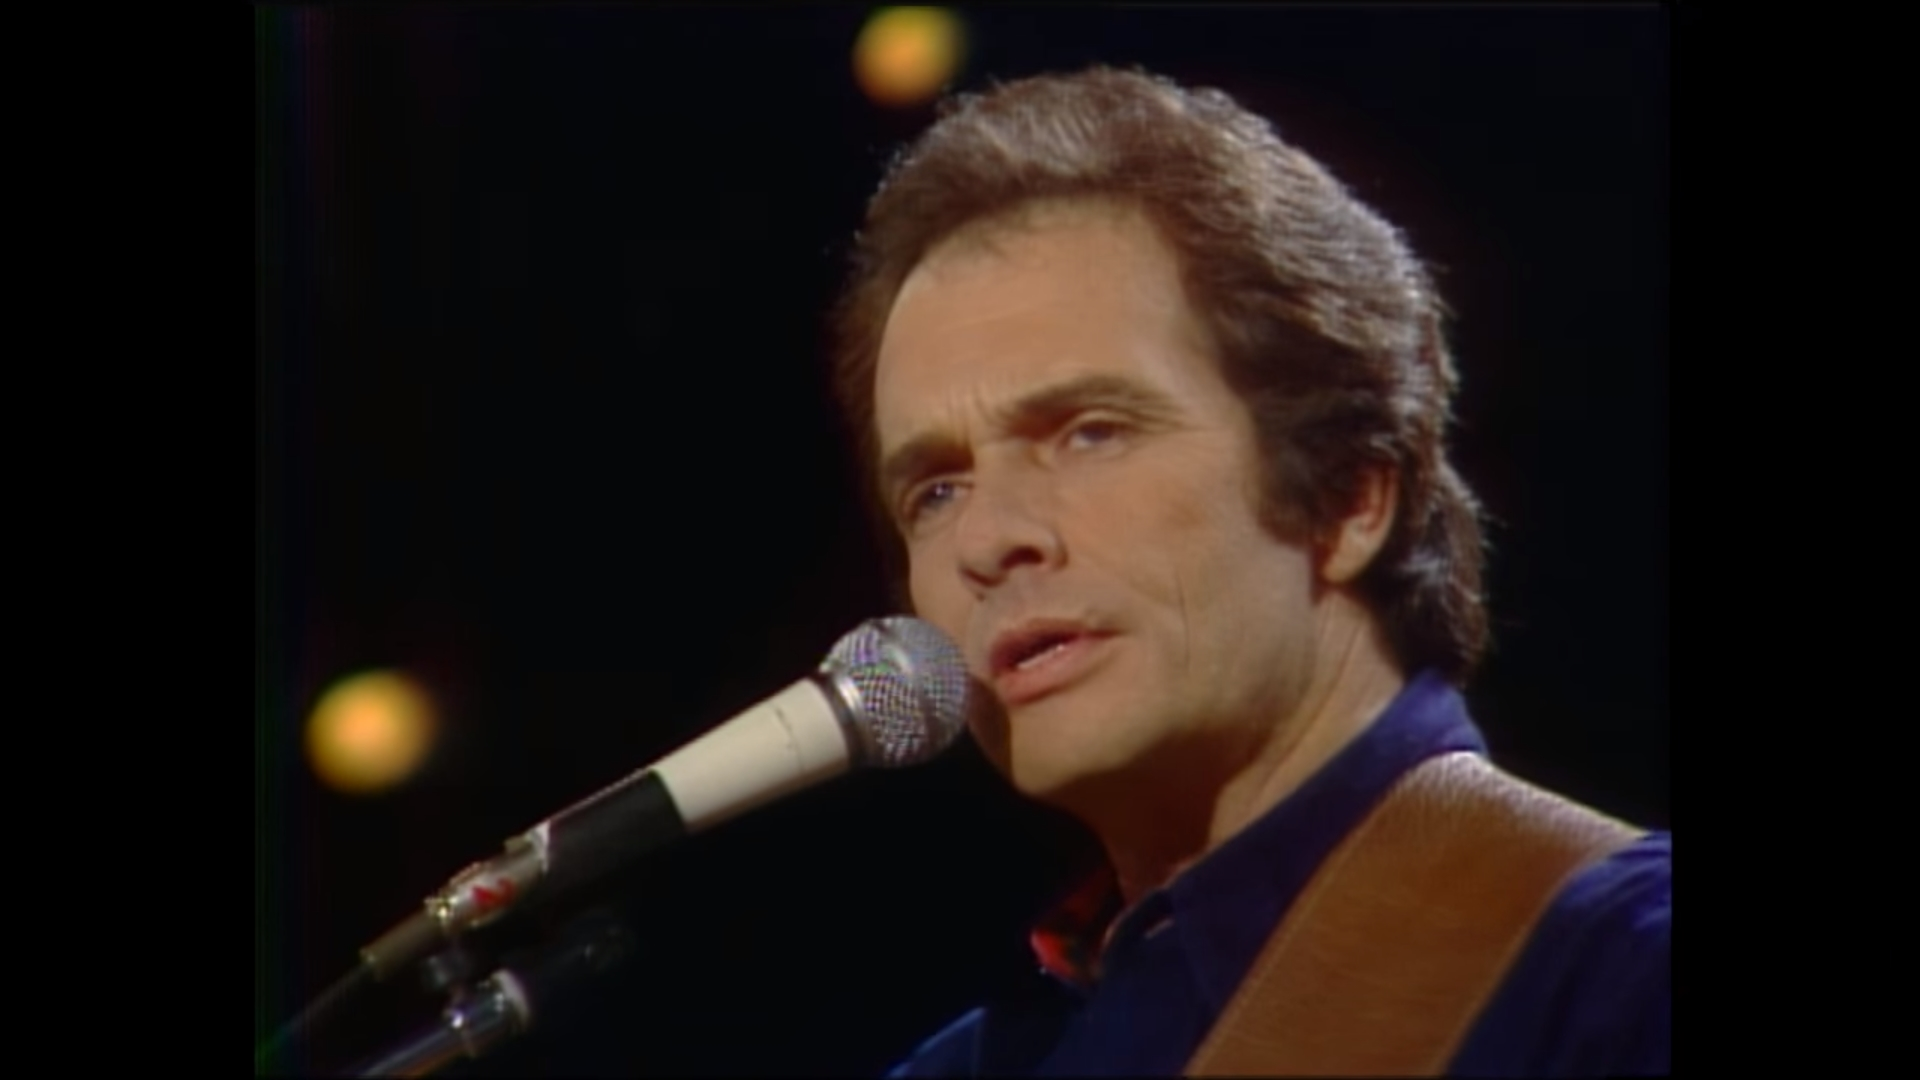 Merle Haggard Tour Dates and Concert Tickets